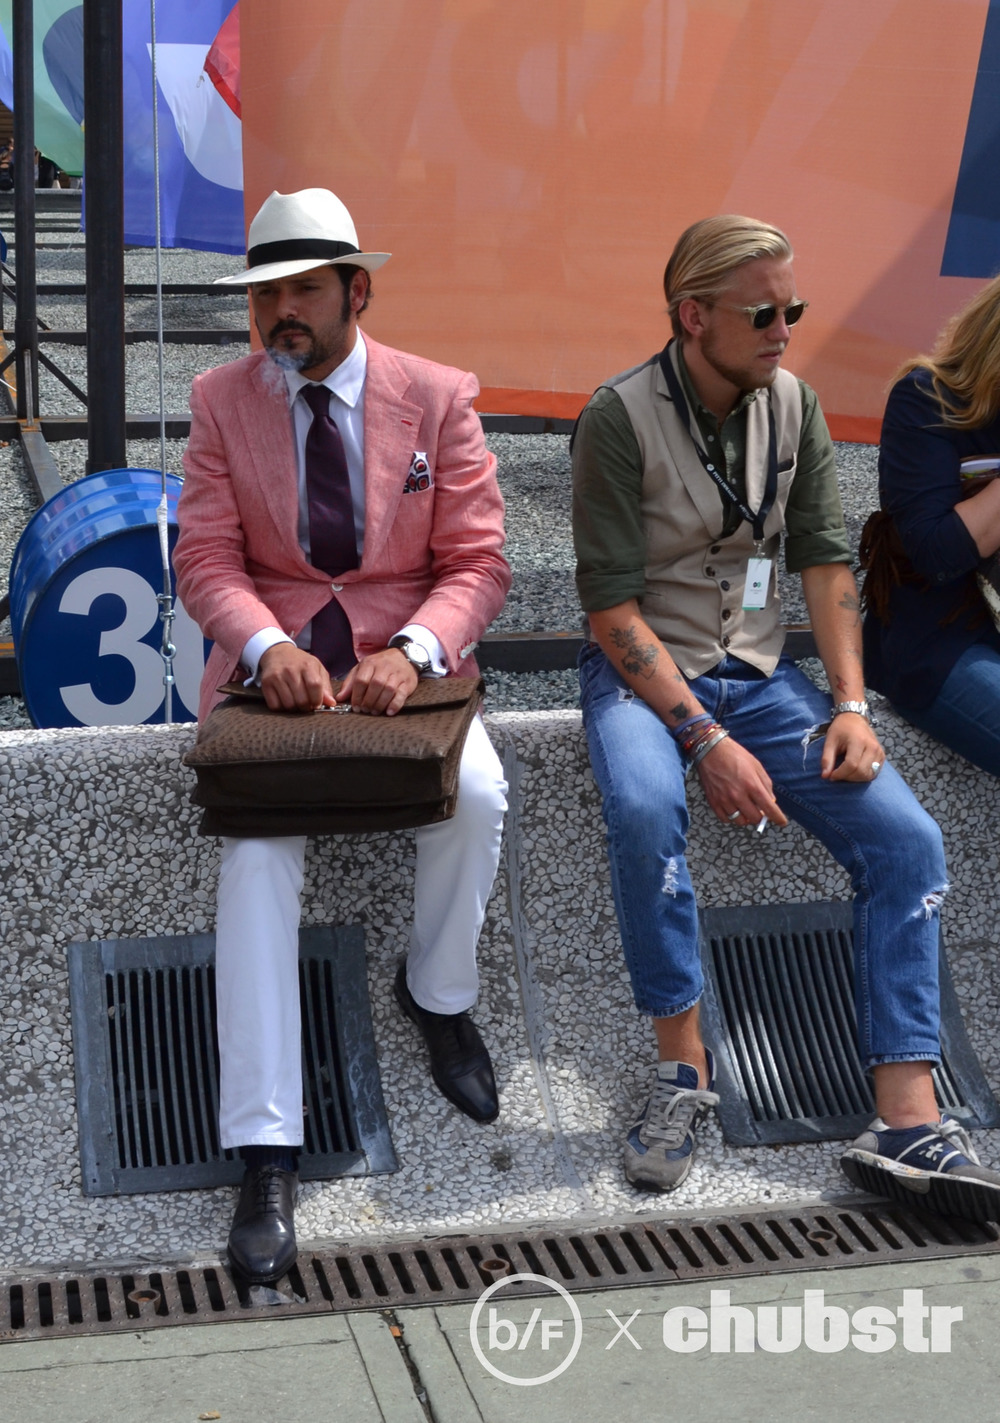 BF032_PittiUomo88_FB_52.jpg